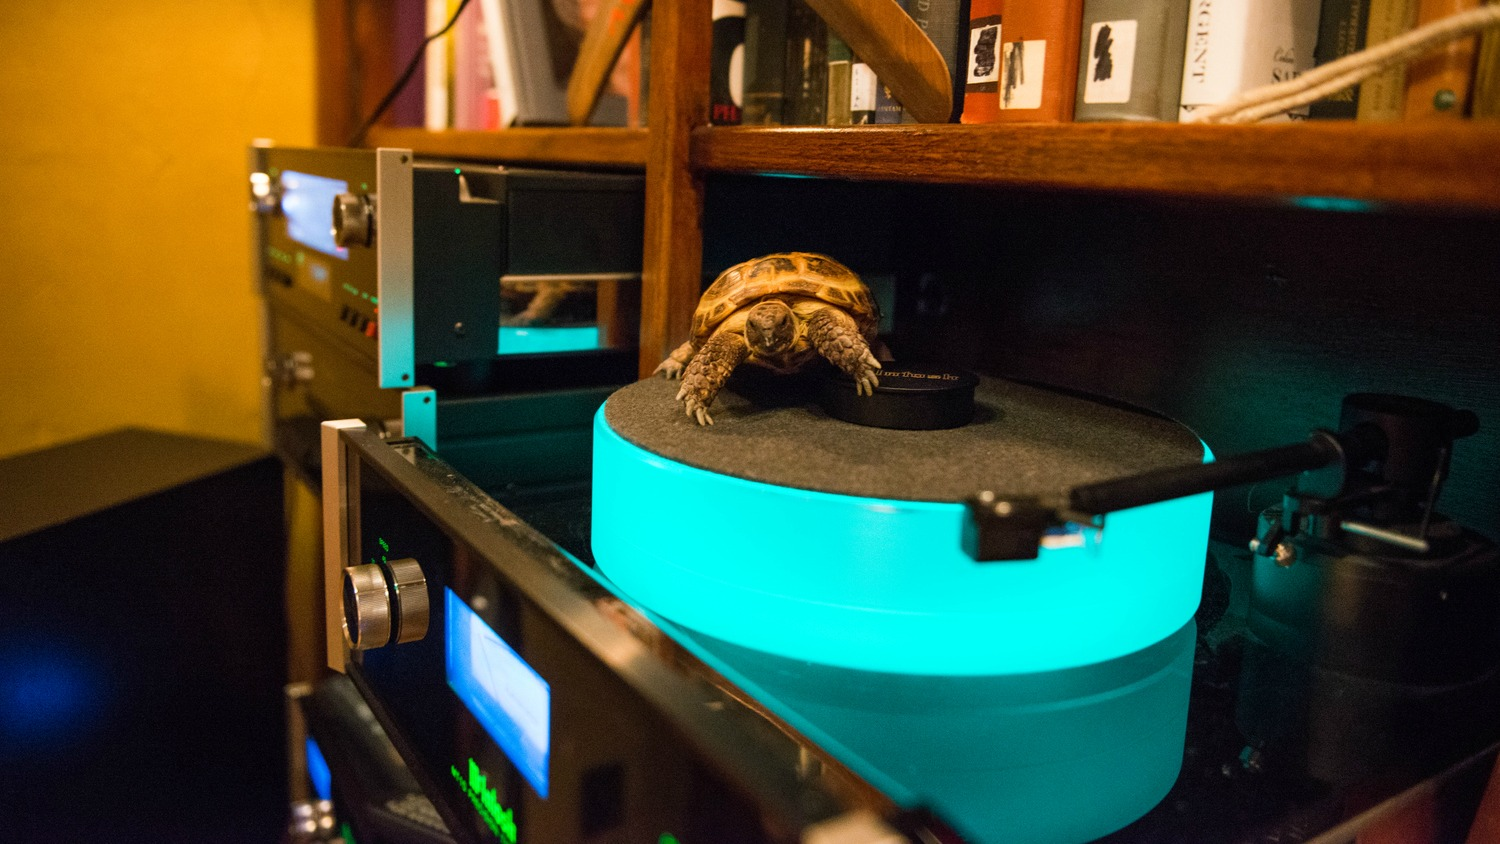 Fact #5: DJ Clyde is very picky about what he's willing to play on his turn tables. This turtle prefers to shell-ebrate good times with instrumental electronica.